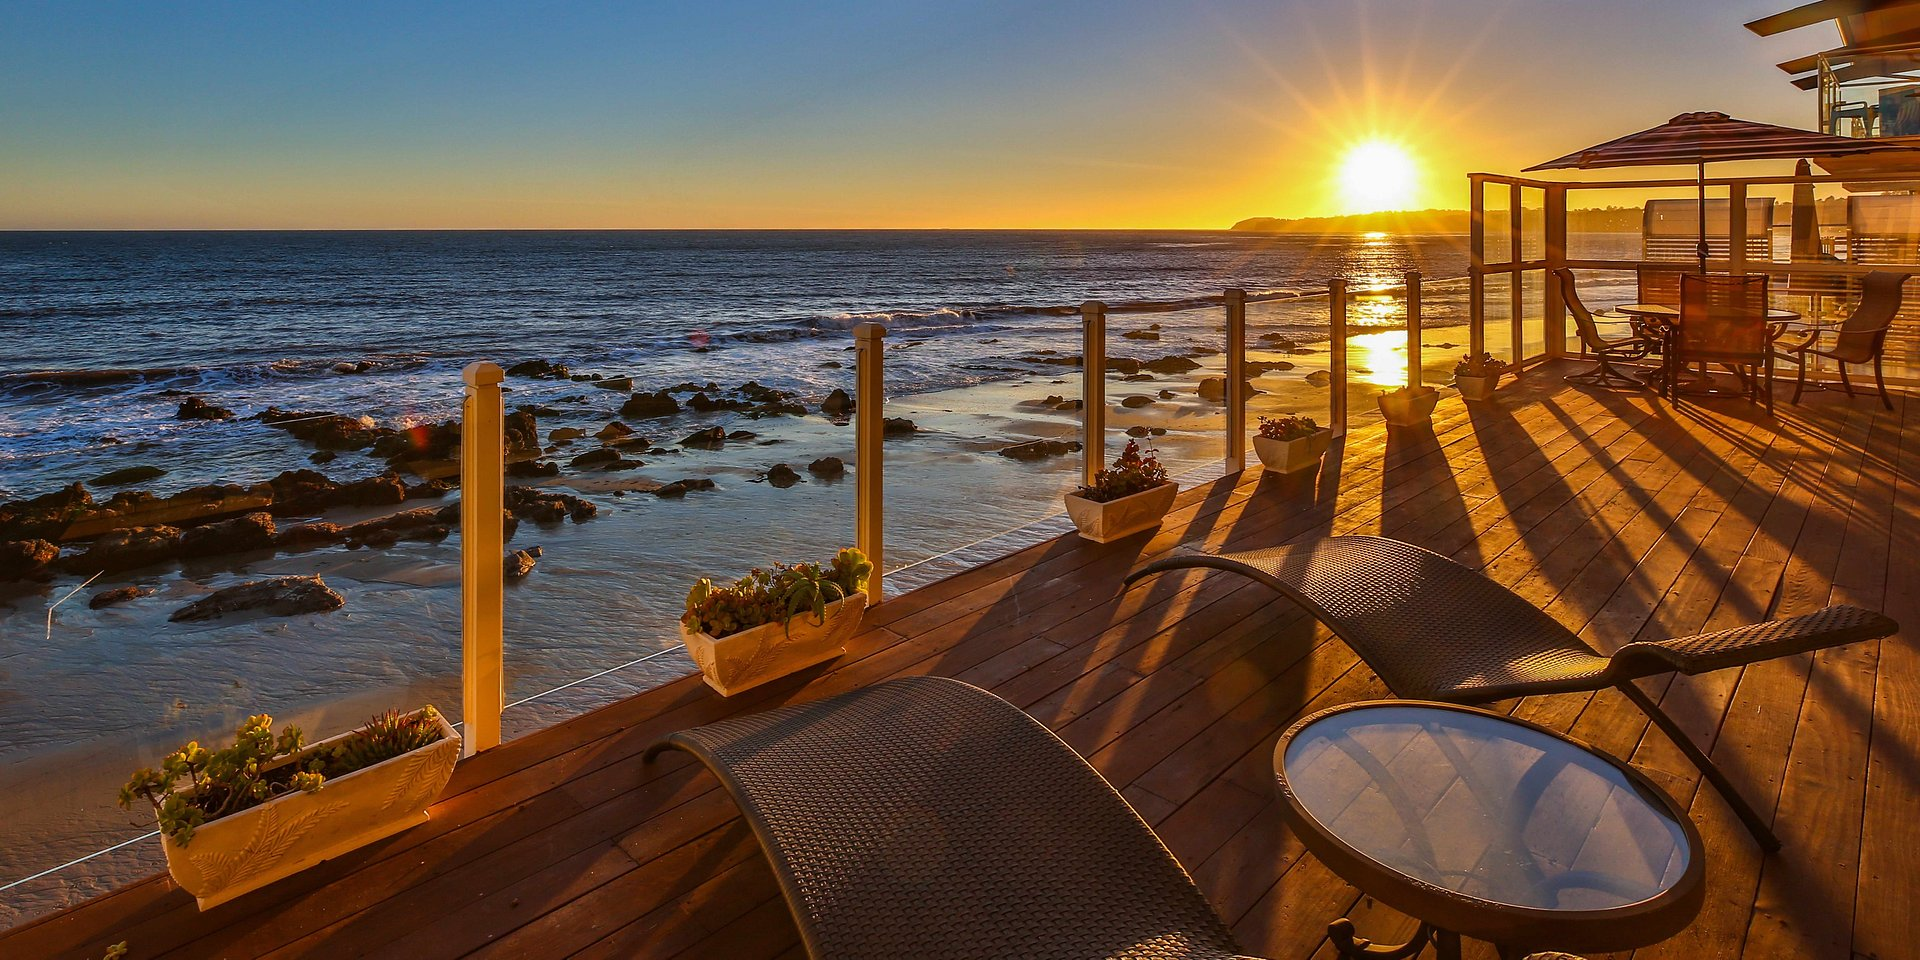 Coldwell Banker Residential Brokerage Lists the Malibu Beachfront Home of Barry Williams from the Brady Bunch for $6.375 Million